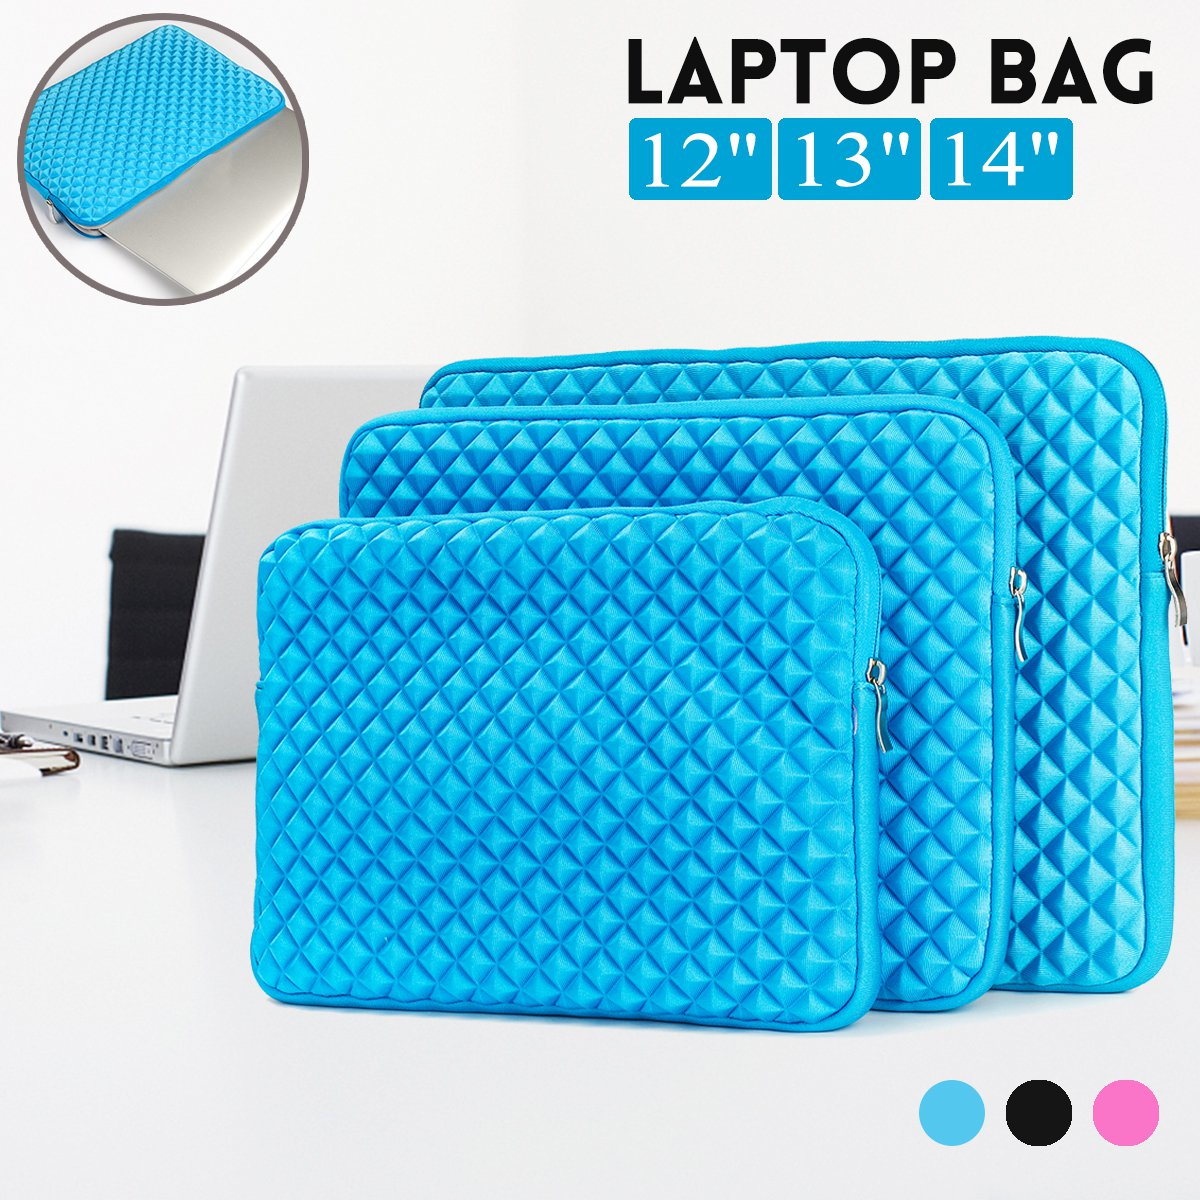 Shockproof Dropproof Tablet Bag Laptop Bag For 12 Inch 13 Inch 14 Inch Laptop Tablet iPad Pro 12.9 Inch Macbook Air 13.3 Inch